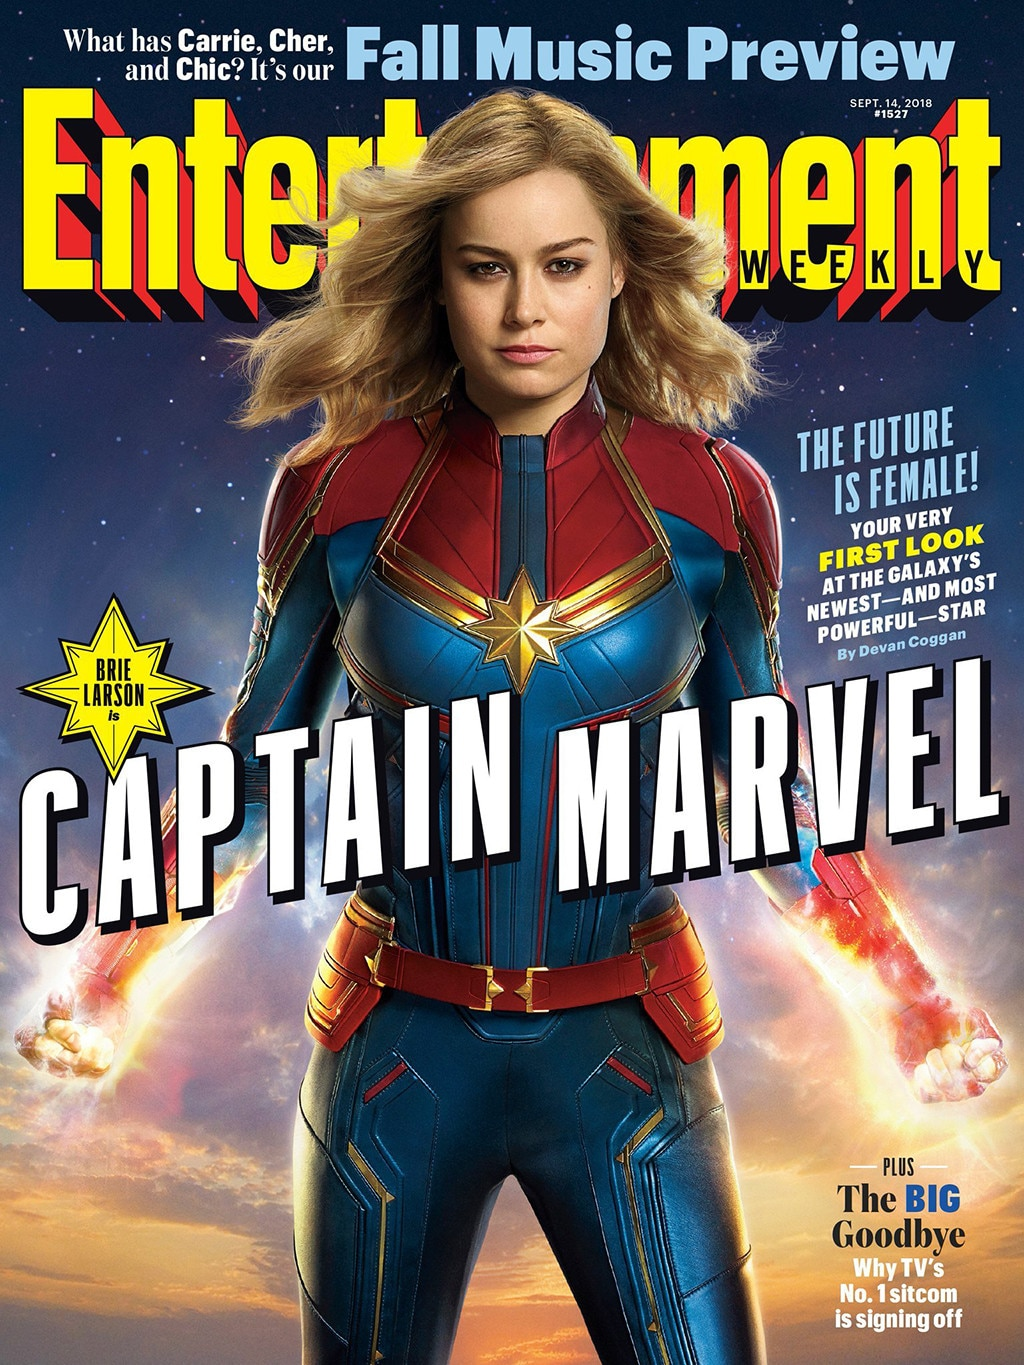 Brie Larson Looks Powerful in Captain Marvel First Look   E  News Captain Marvel  Entertainment Weekly